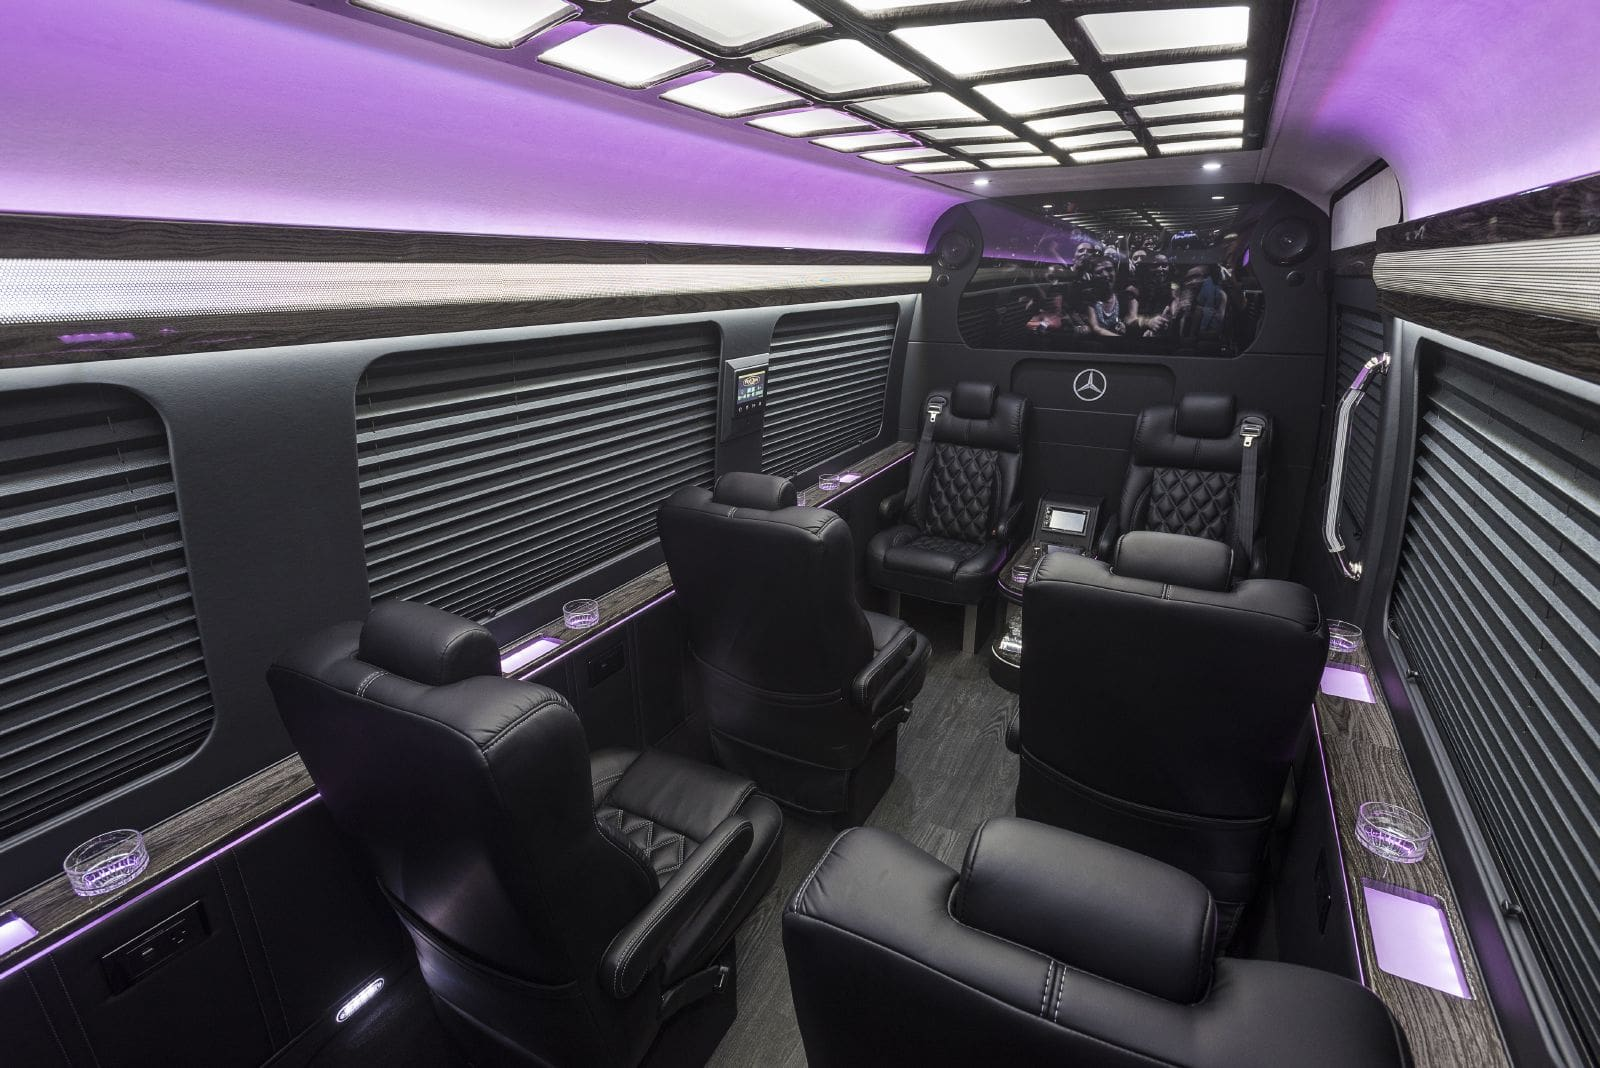 Spacious interior of the Mercedes Jet Sprinter showing the leg room, drink cooler, and outlets for the perfect corporate limo rental.